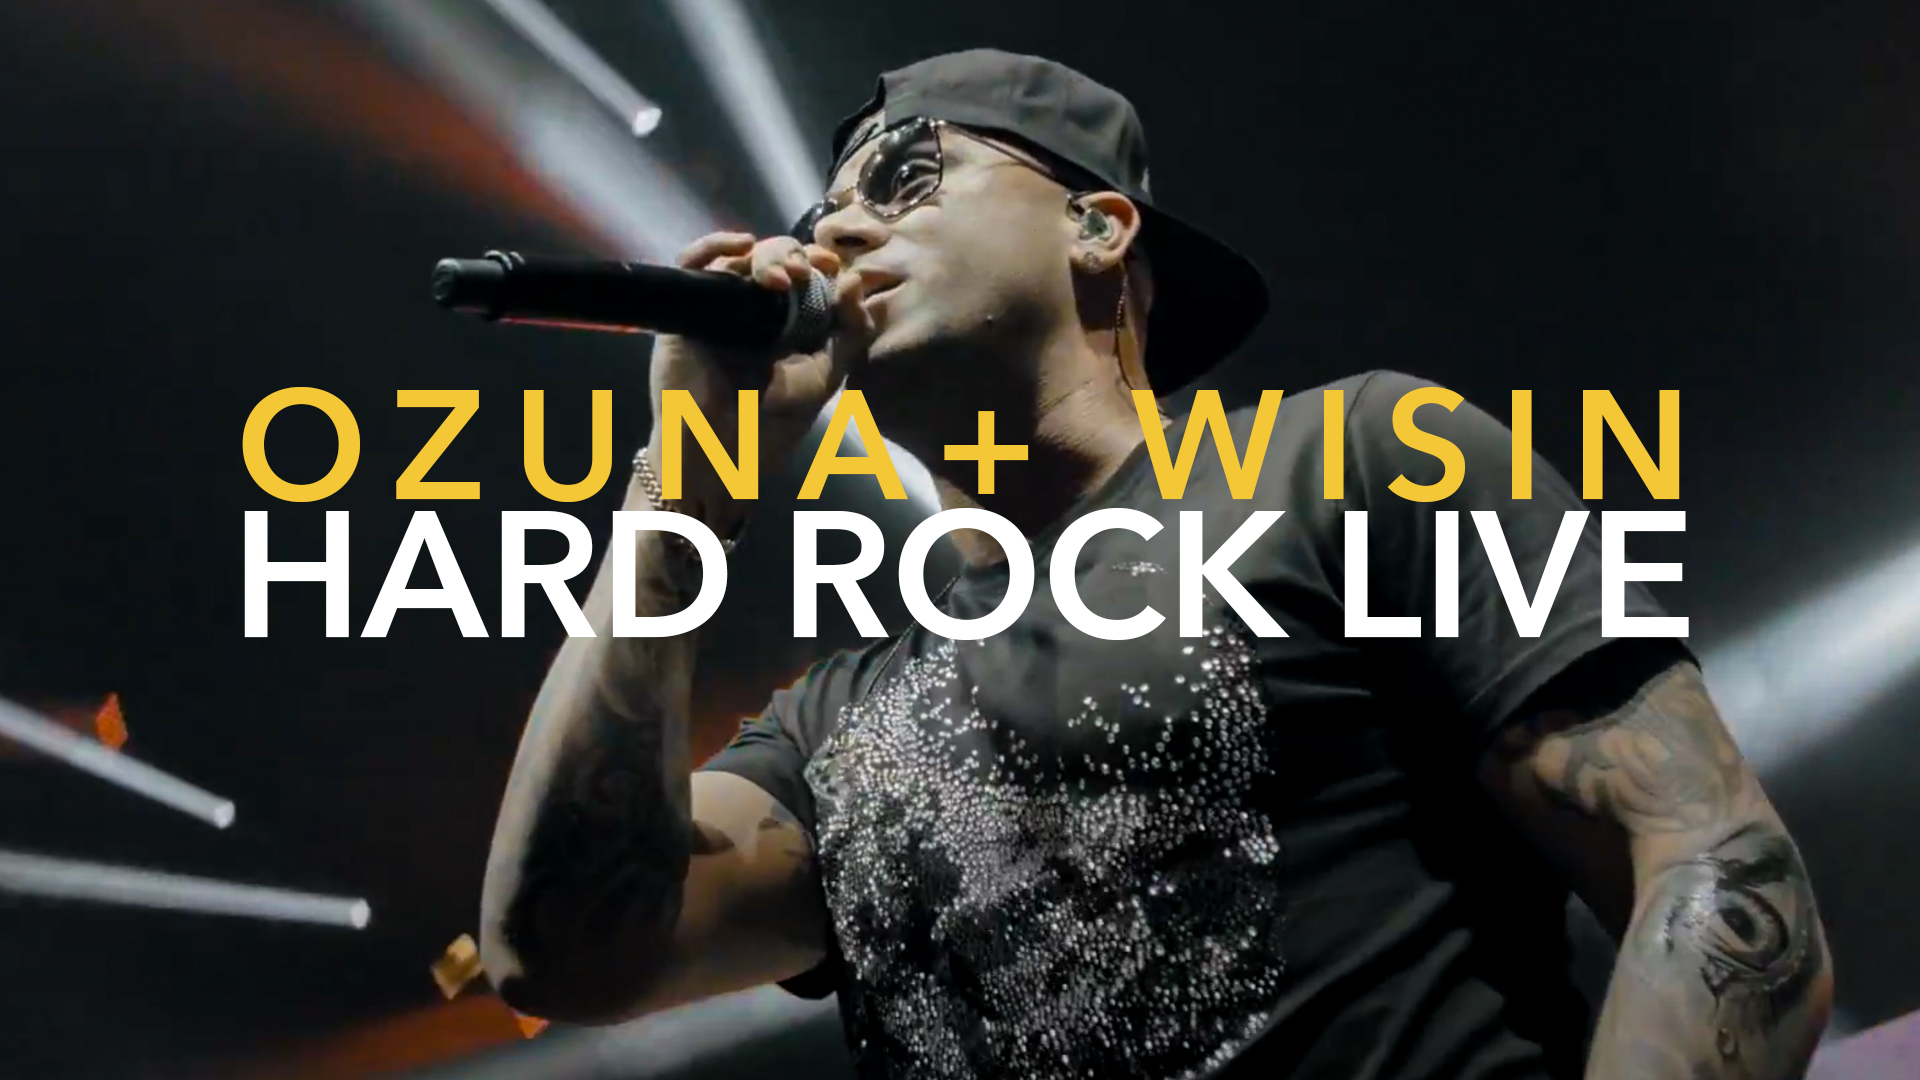 OZUNA + WISIN  ESCAPATE CONMIGO HARD ROCK LIVE MIAMI